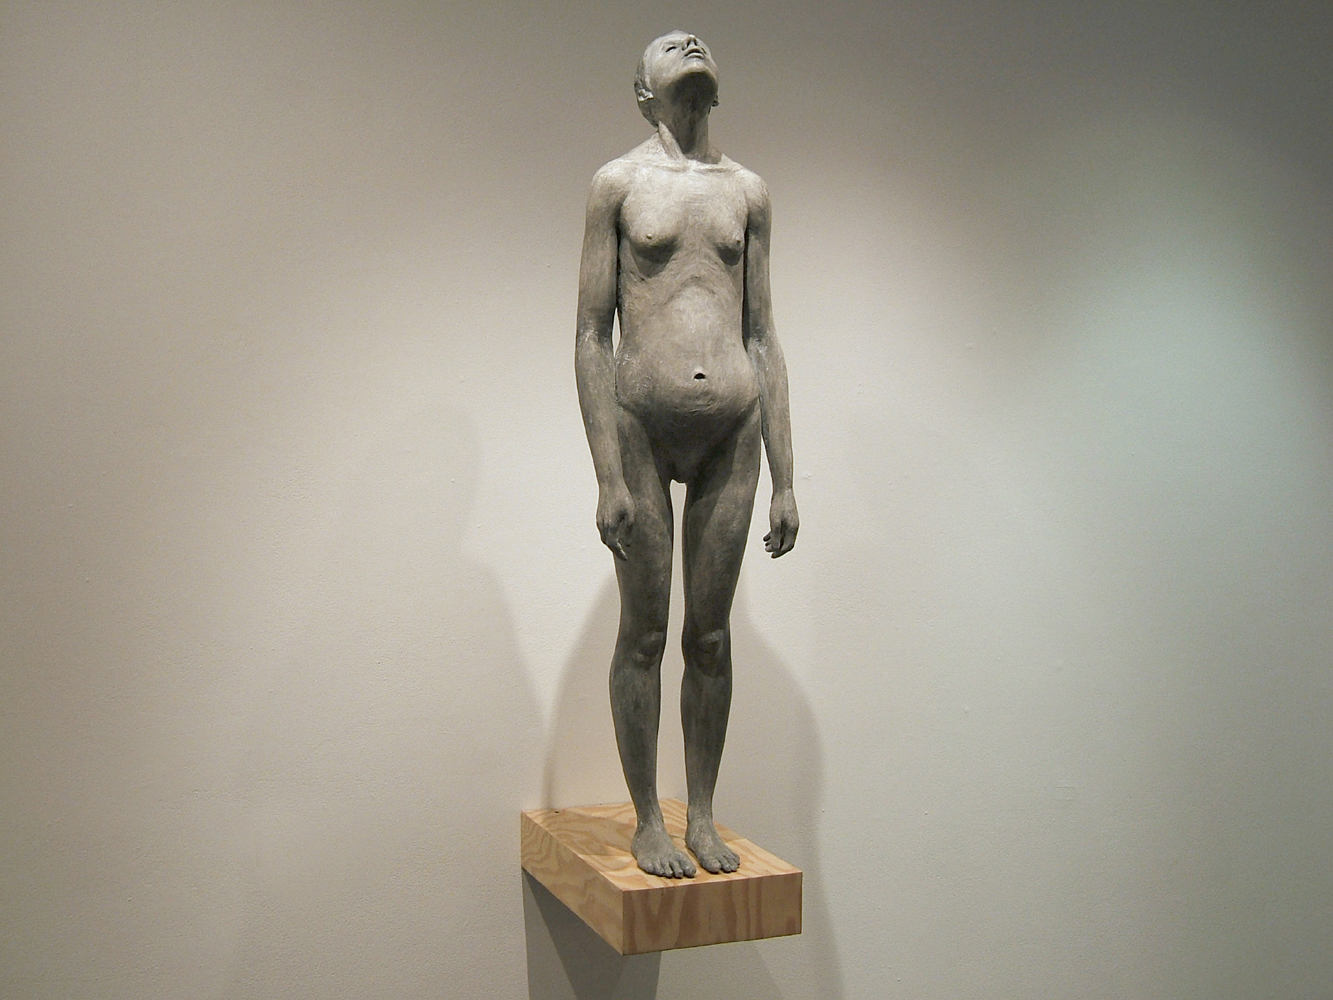 St. Lucy, 40 x 10 x 16 inches, Plaster, Wood - 2006